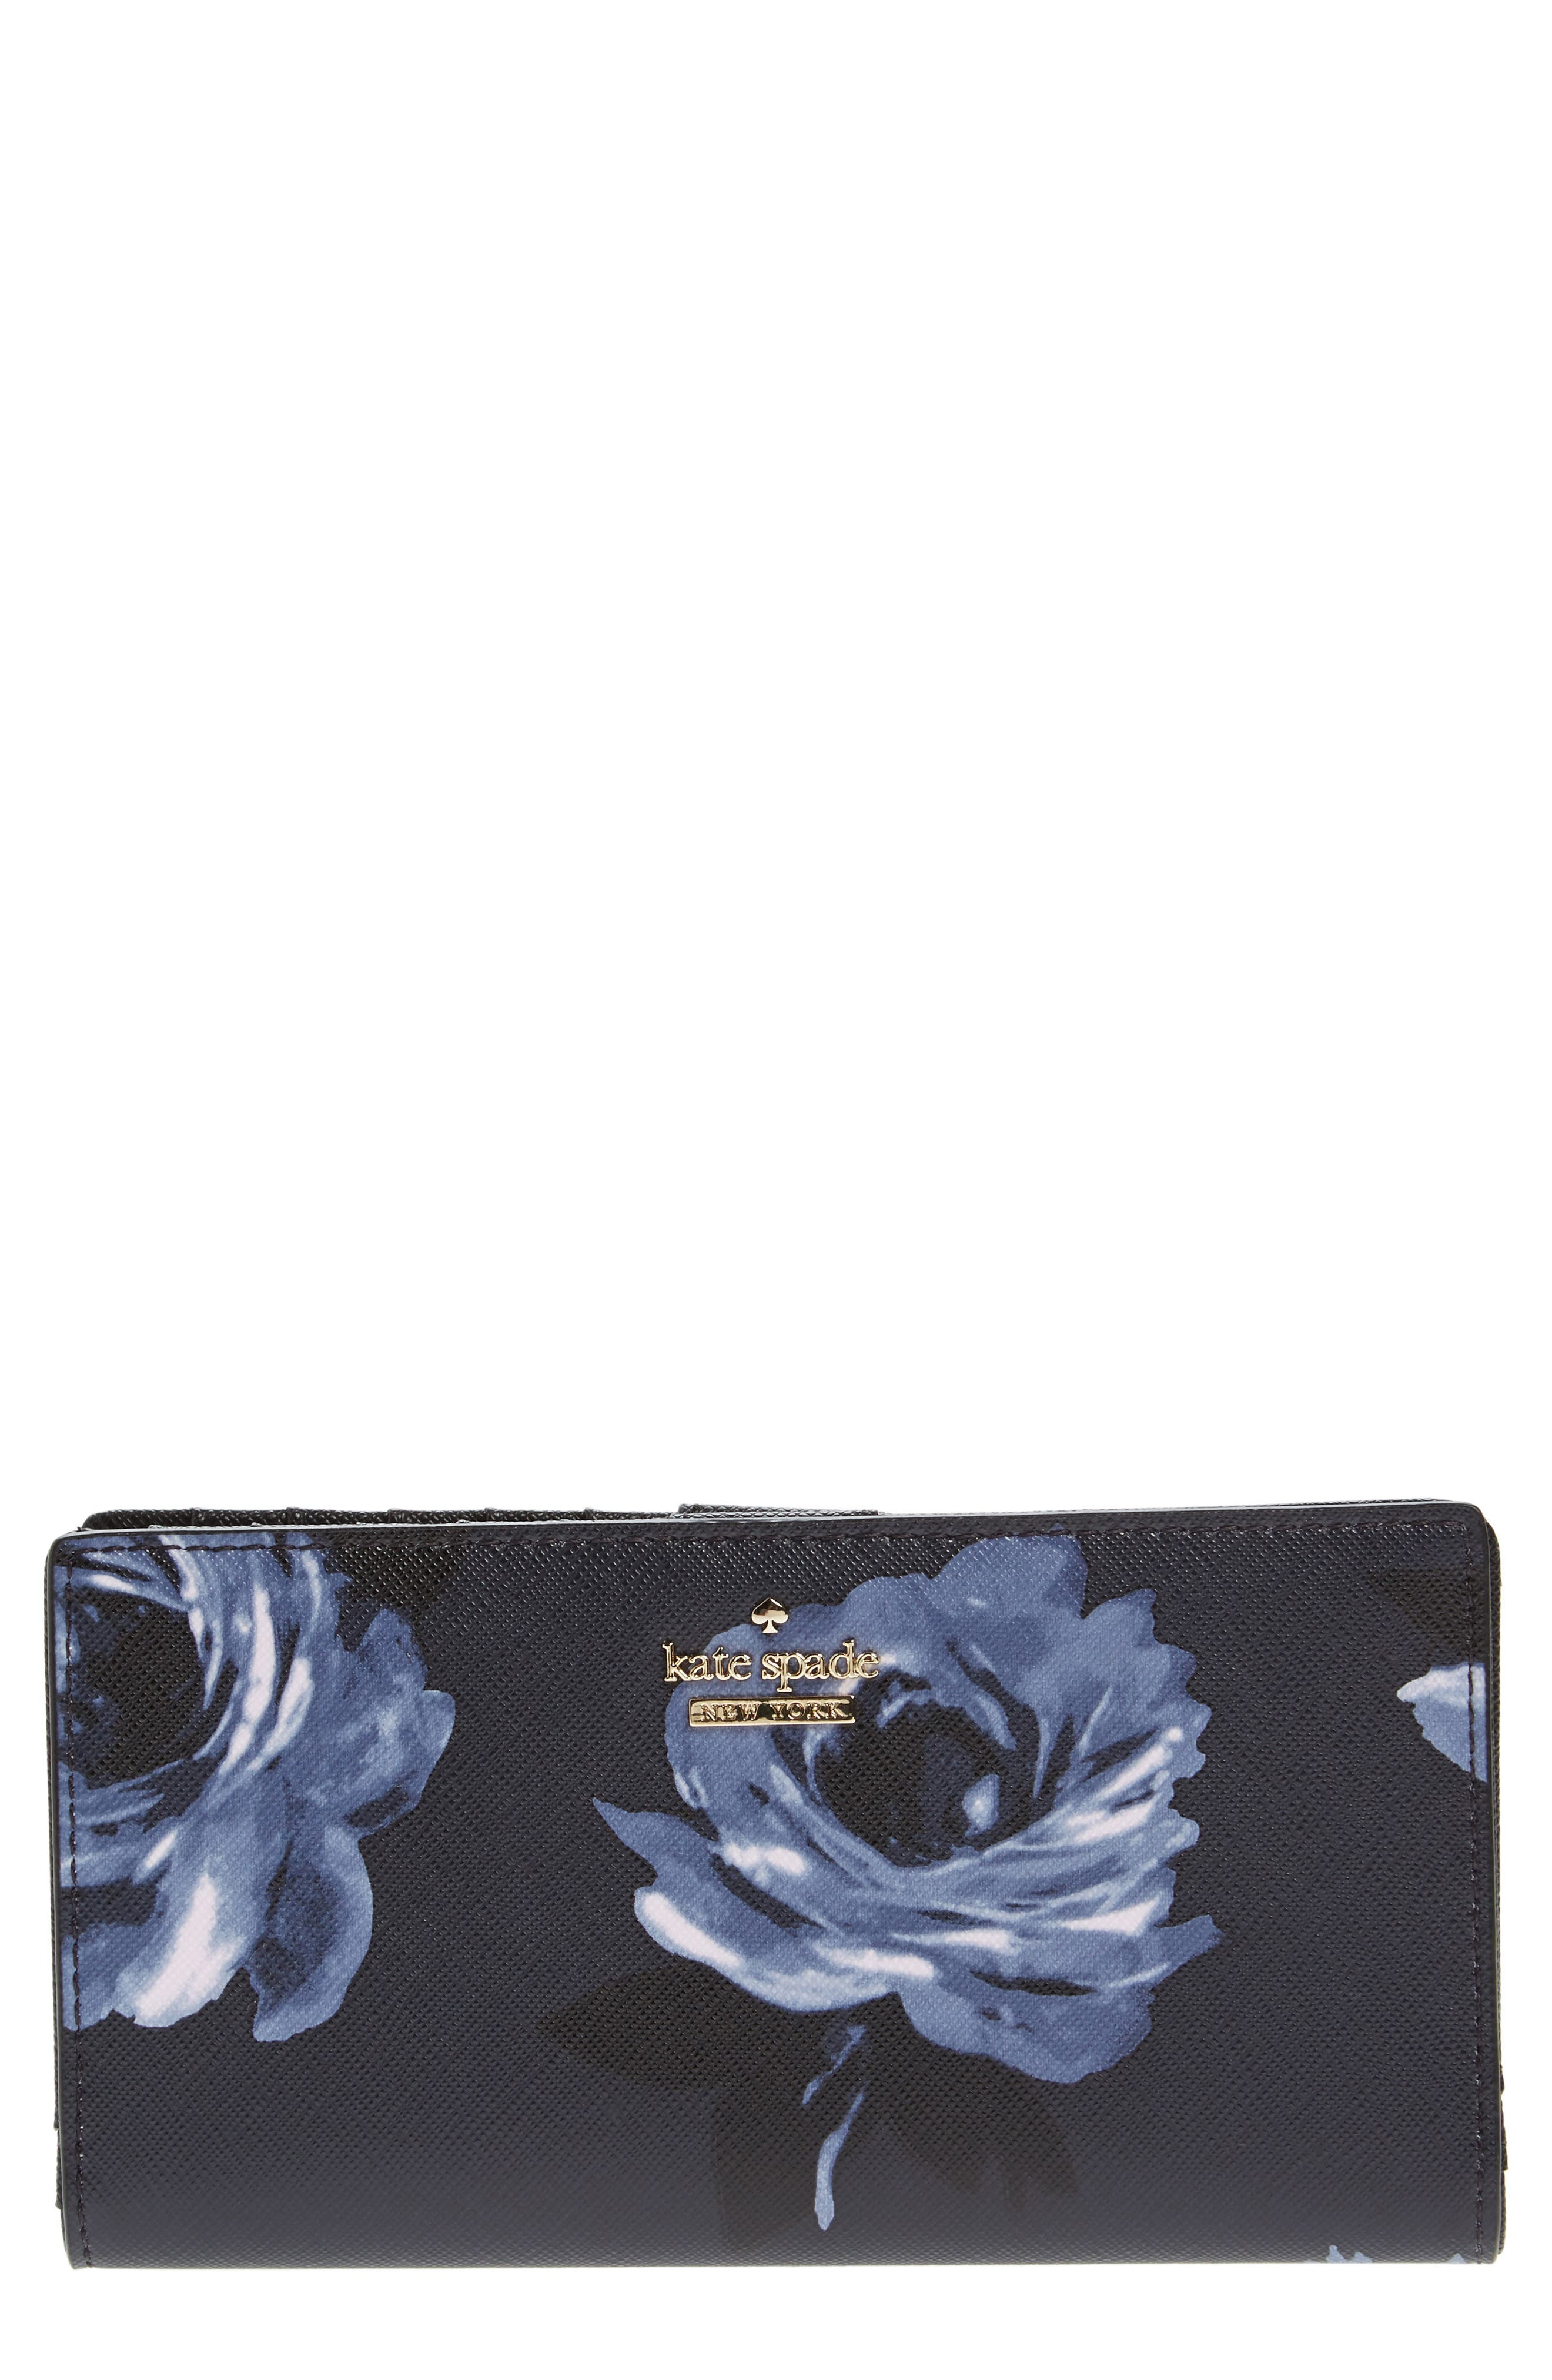 Main Image - kate spade new york cameron street - stacy leather wallet